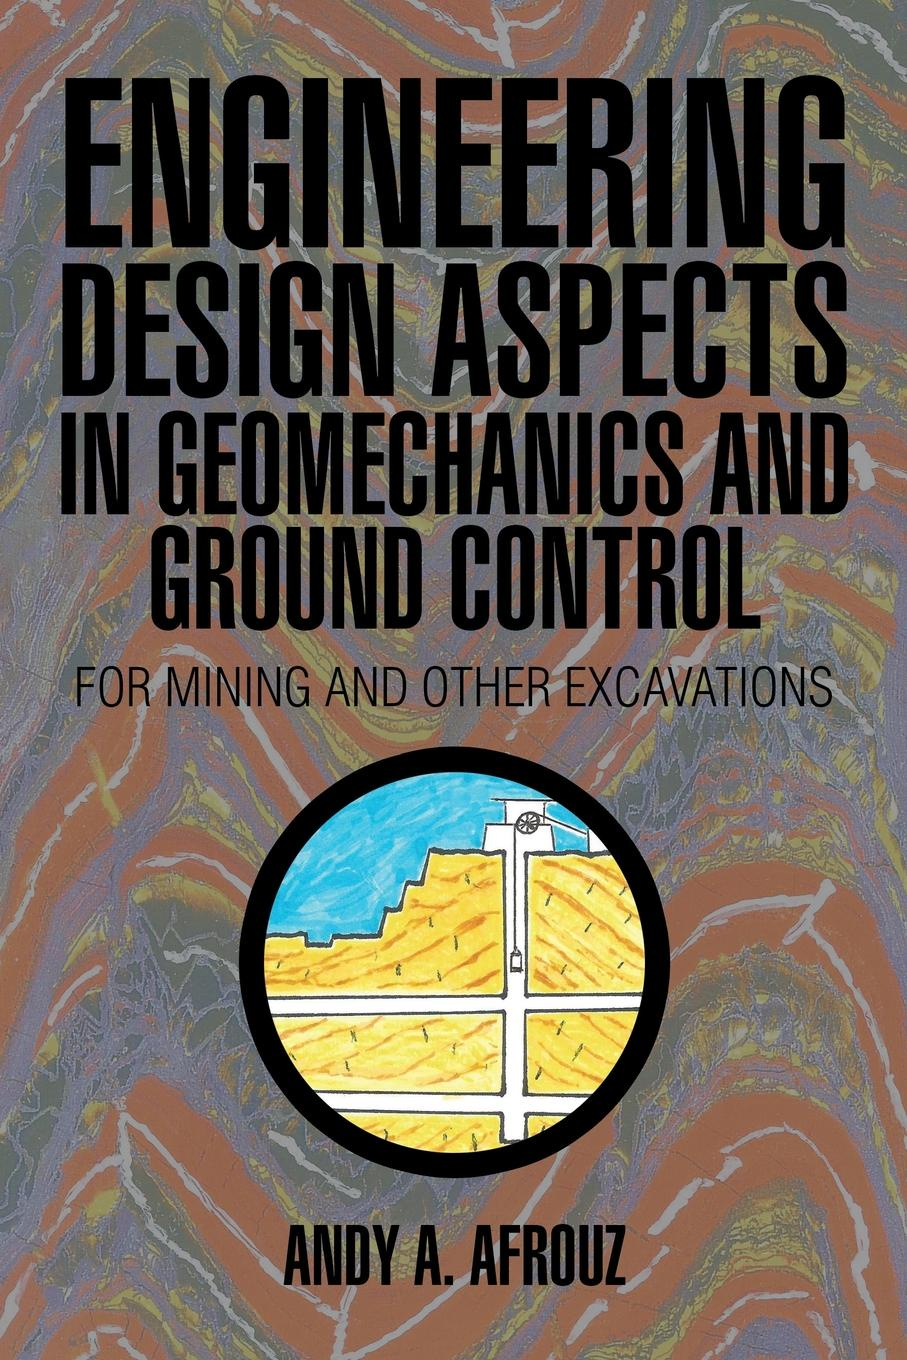 Andy A. Afrouz Engineering Design Aspects in Geomechanics and Ground Control. For Mining and Other Excavations pierre yves hicher multiscales geomechanics from soil to engineering projects isbn 9781118601389